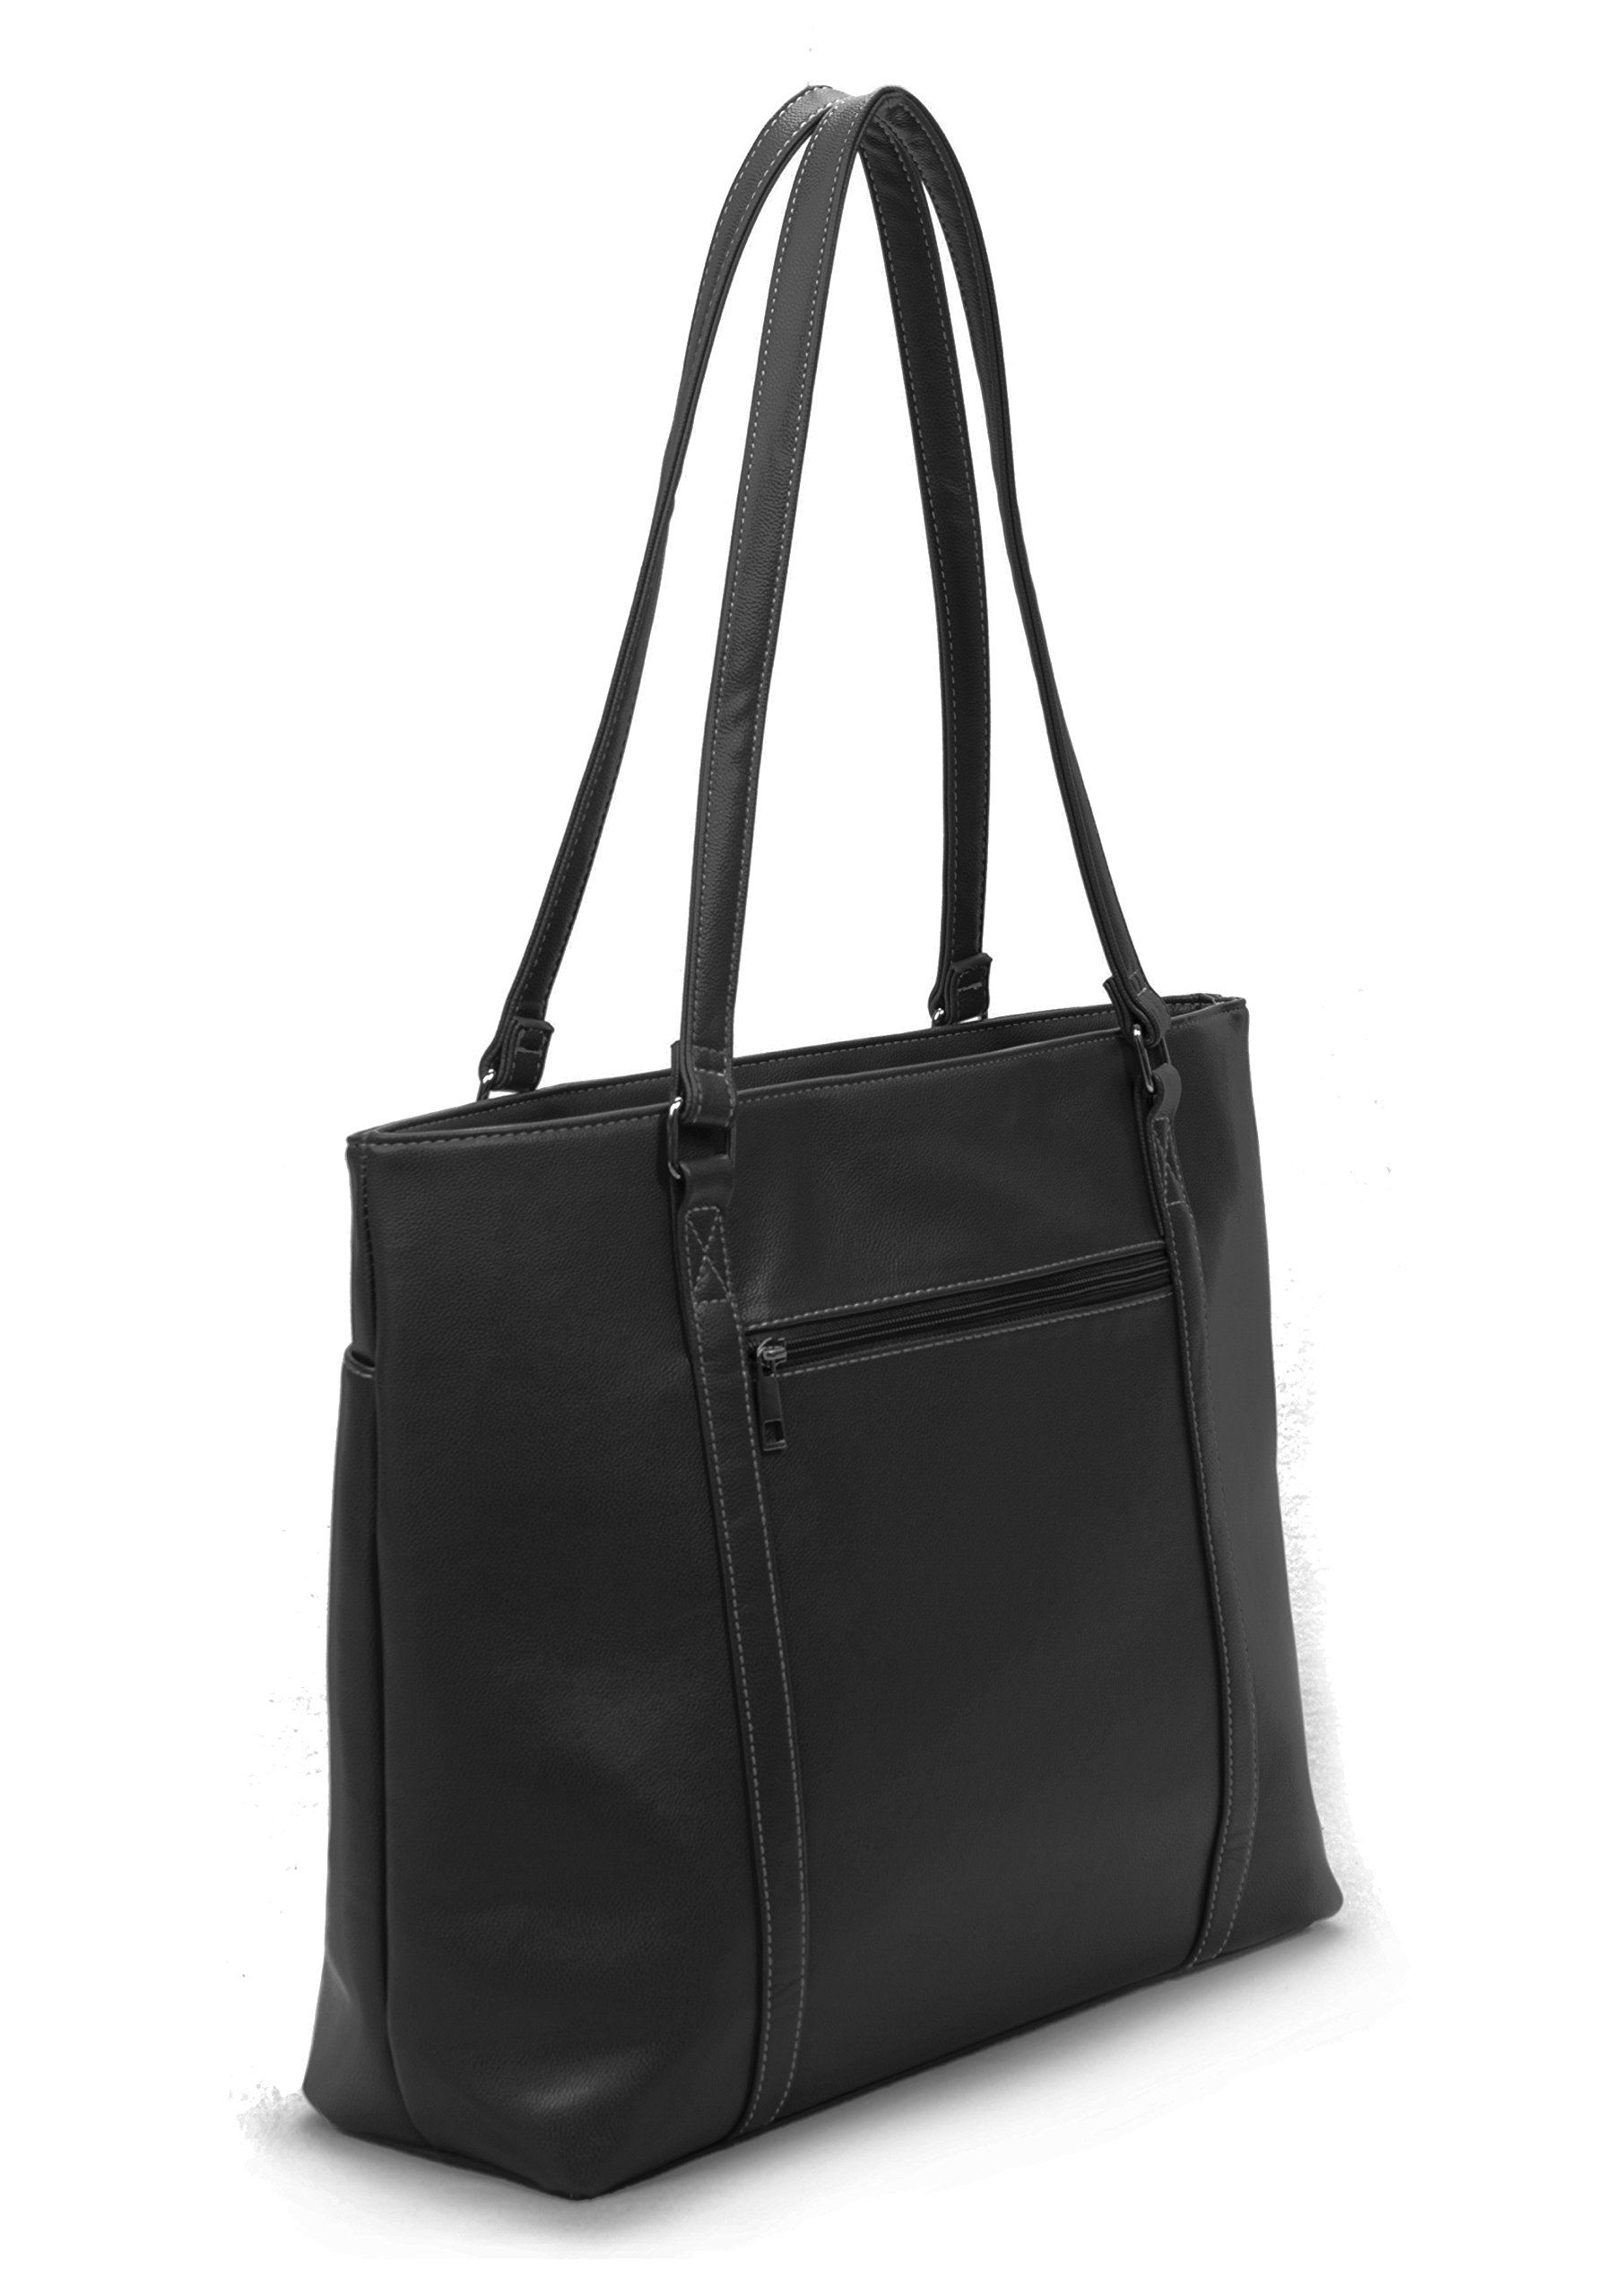 Overbrooke Classic Womens Tote Bag for Laptops  up to 15.6 Inches, Black by Overbrooke (Image #5)